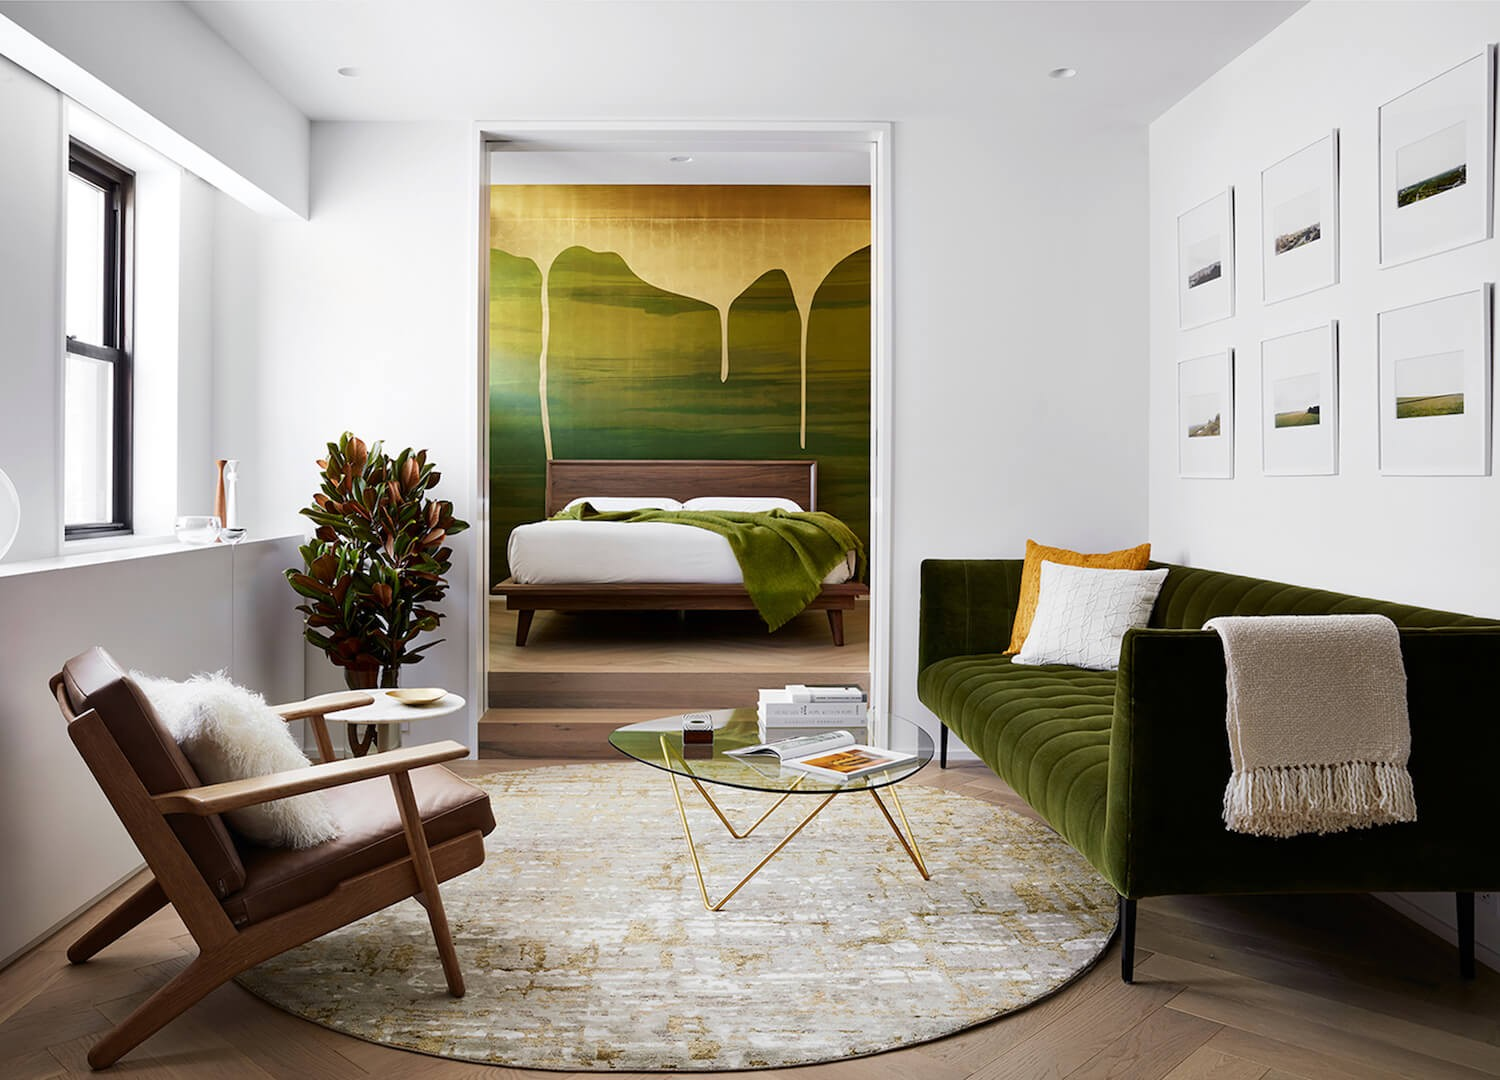 Interior Design Project Brings Nature Inside This New York Apartment green design ideas inspirations11